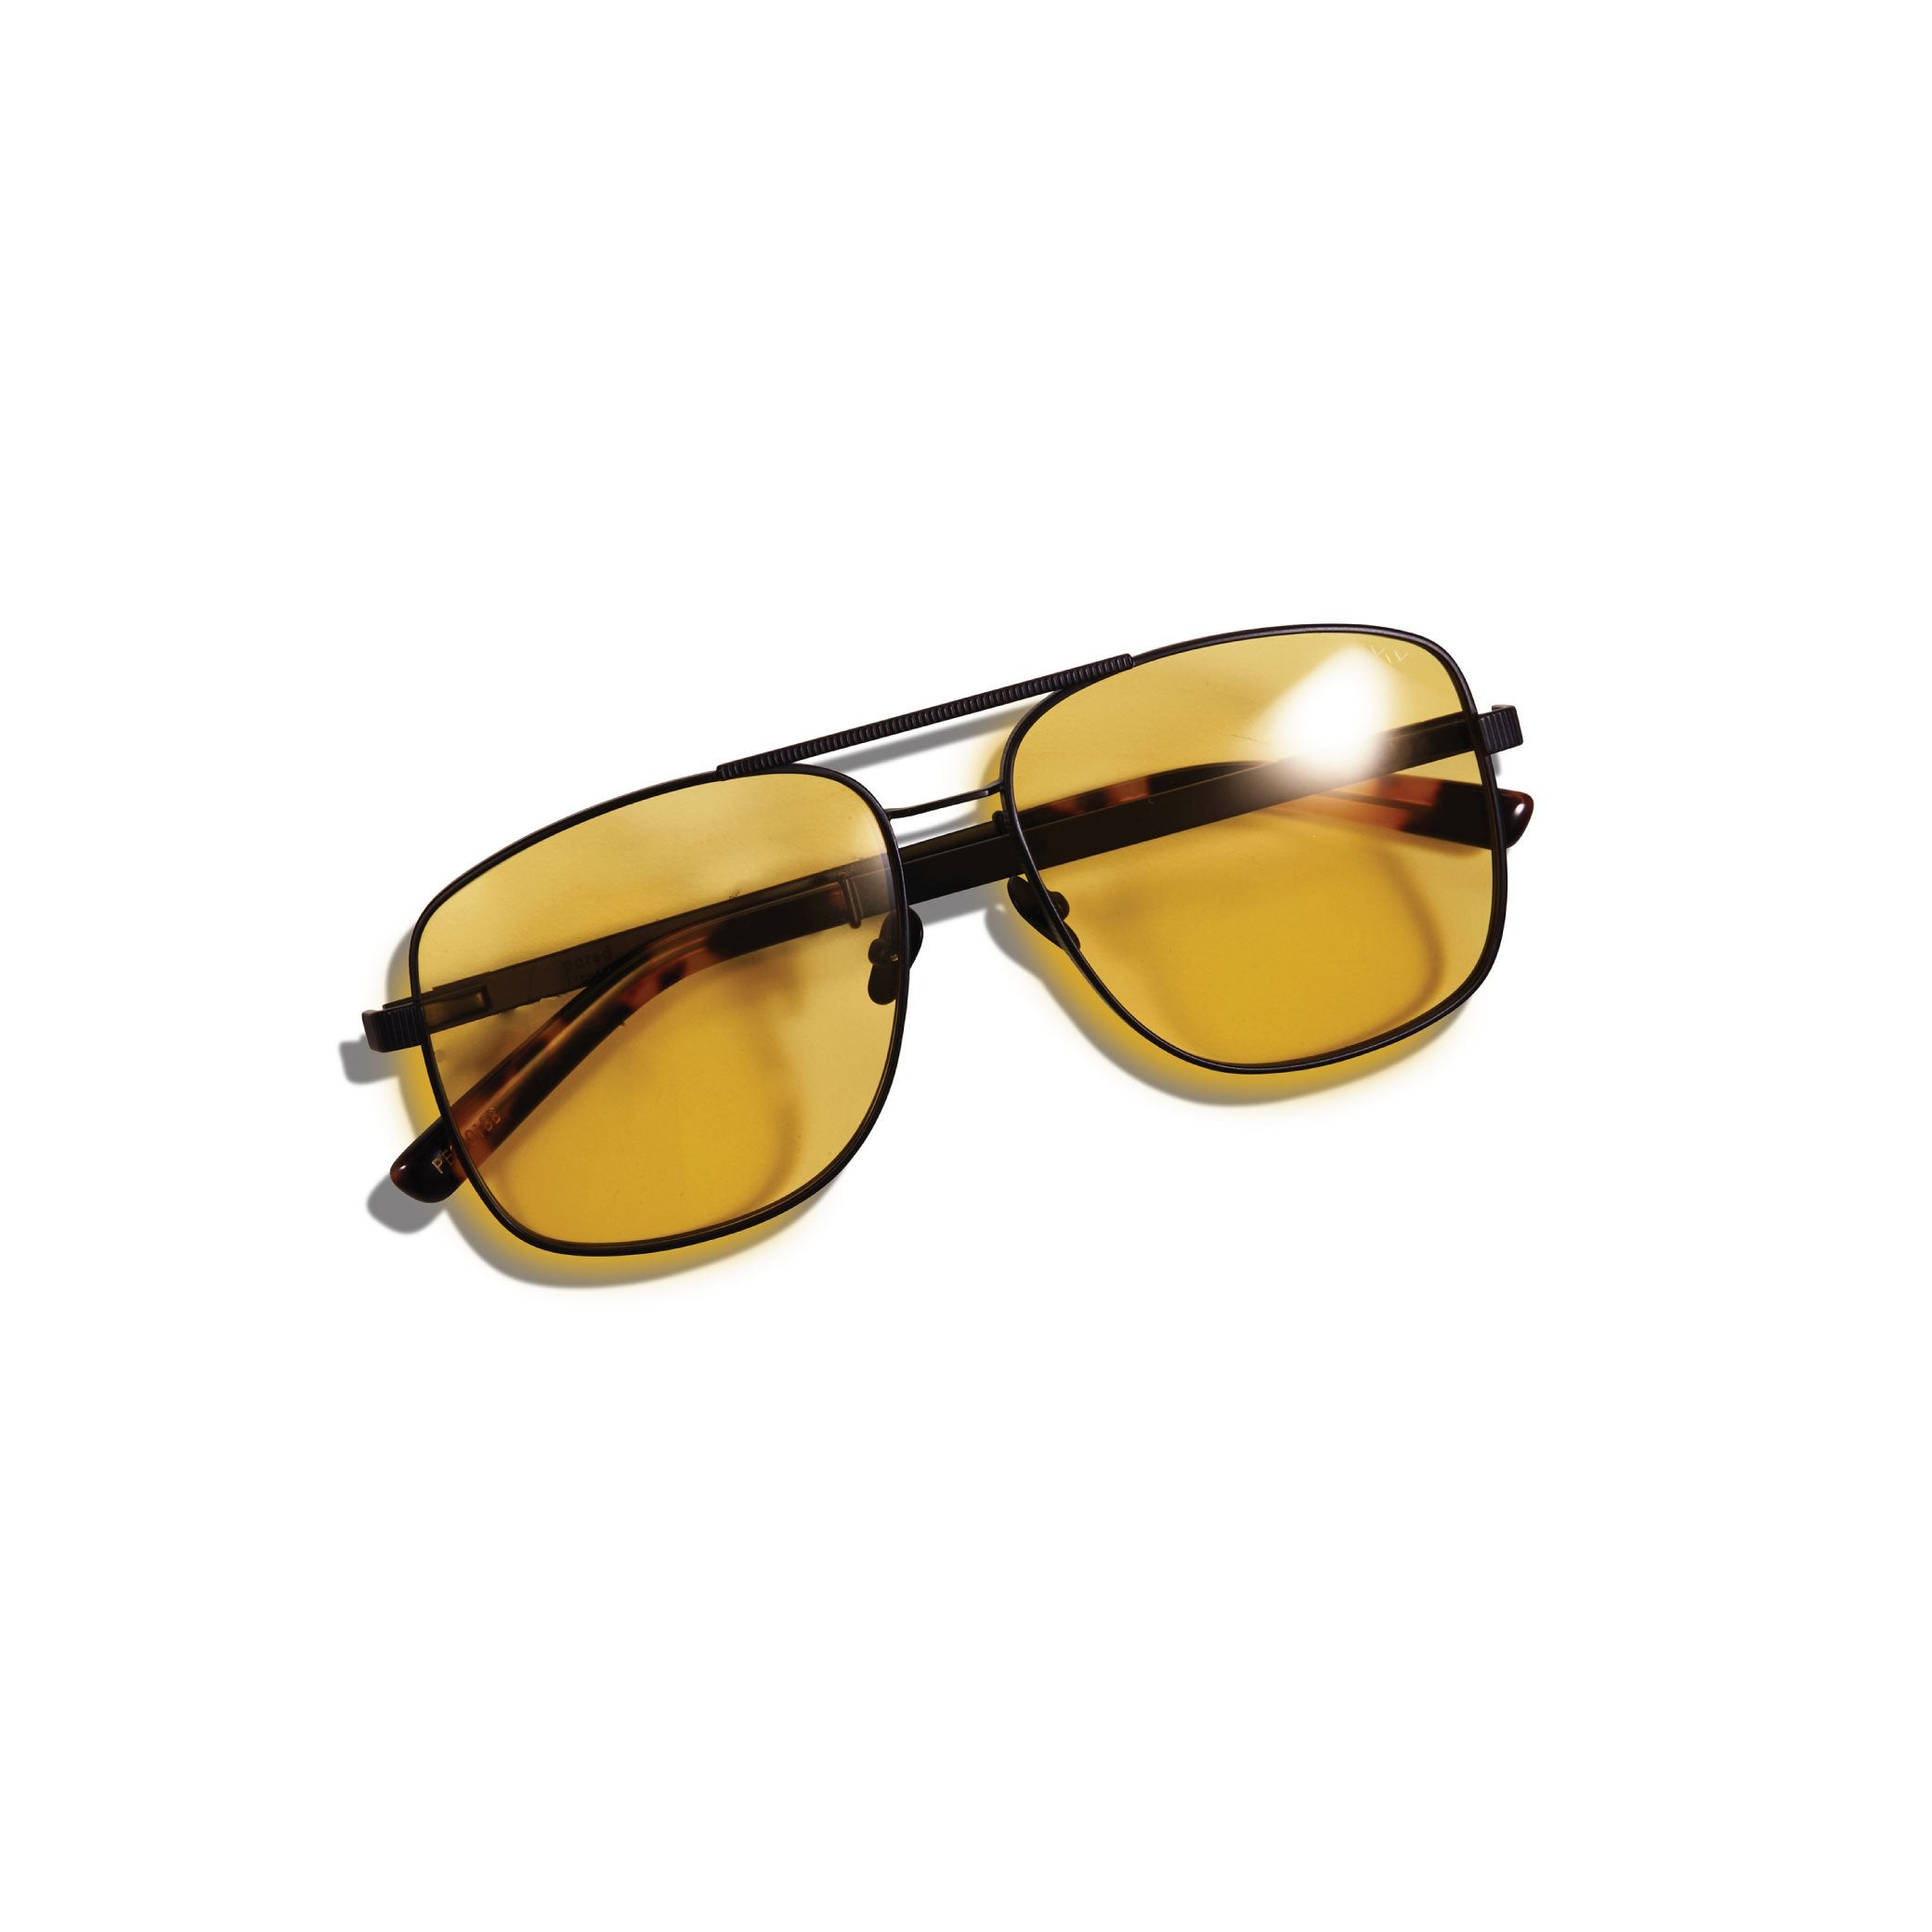 UPTOWN & DOWNTOWN / MATTE BLACK & SOLID YELLOW LENS